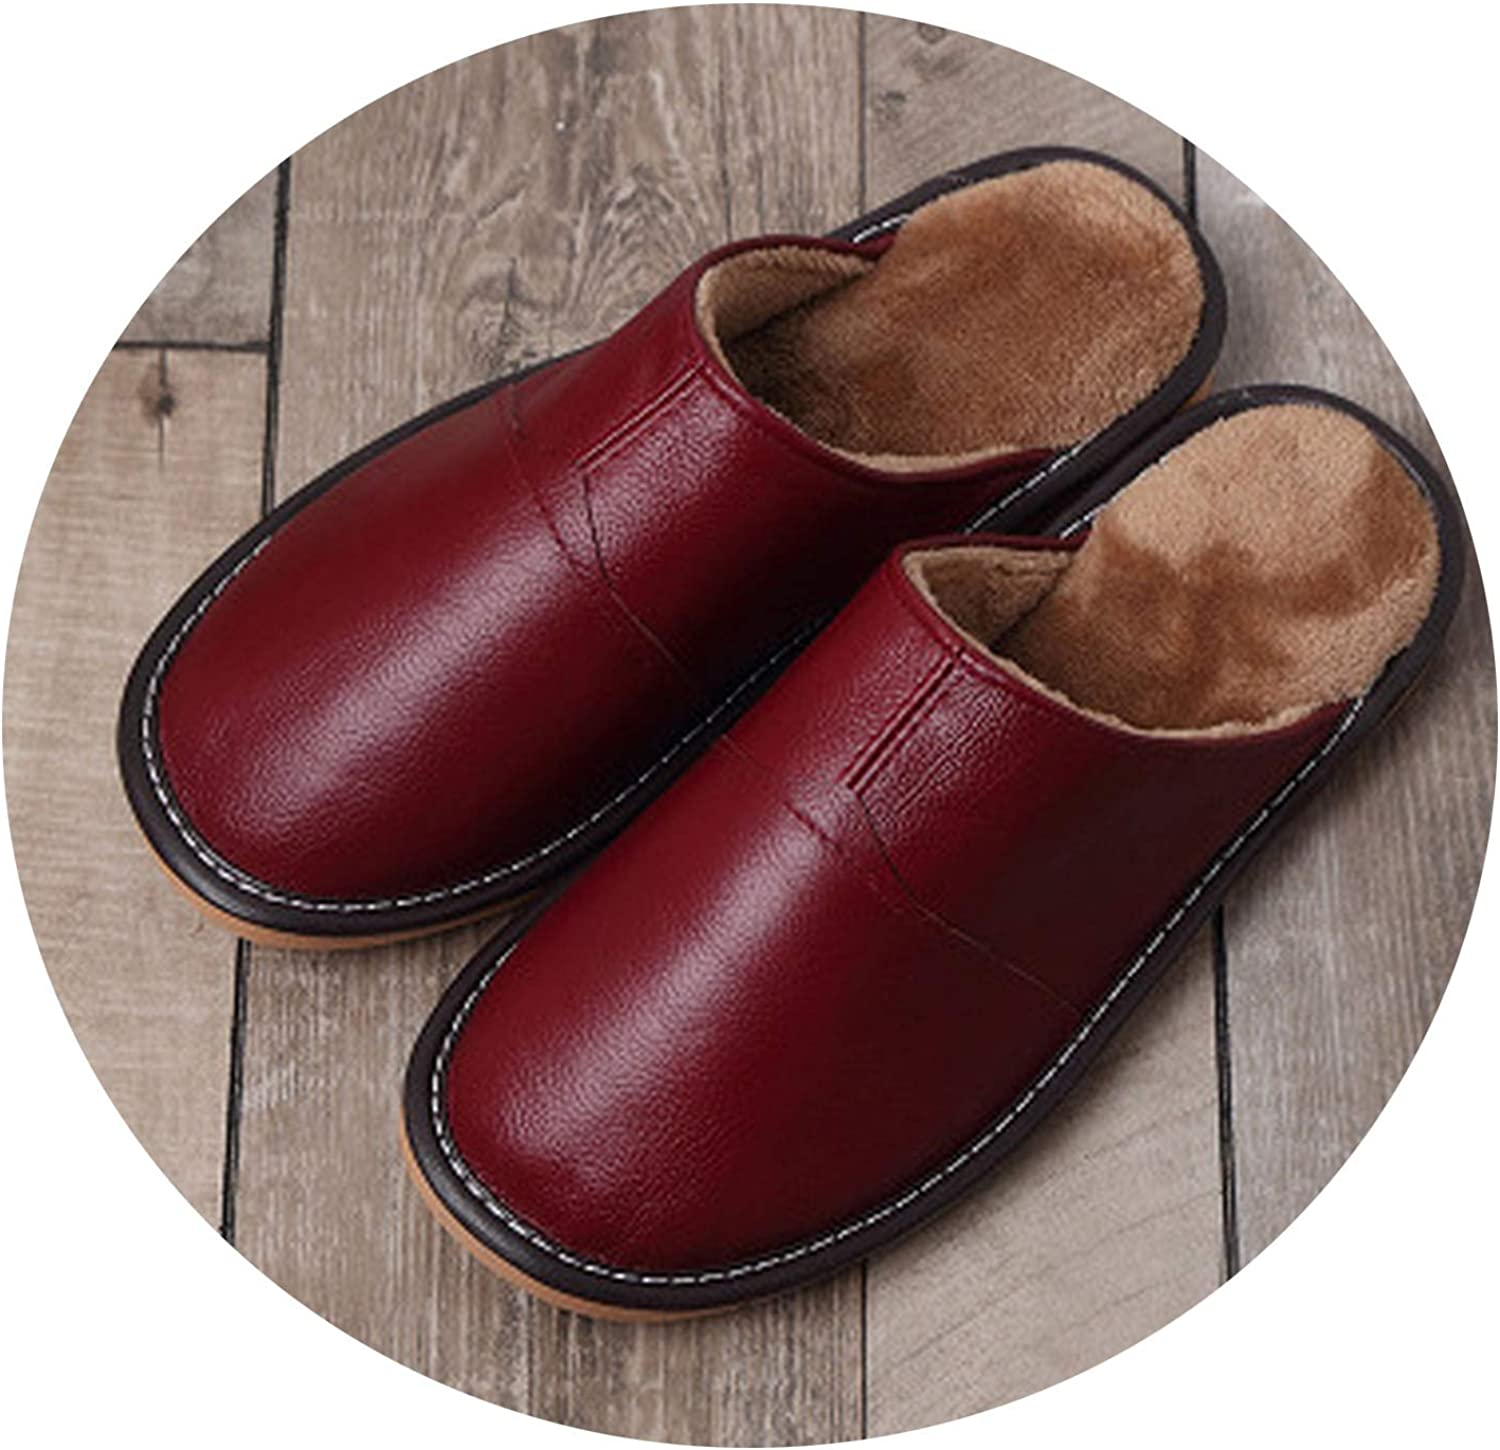 New Genuine Leather Home Slippers Women Men Slippers Plush Warm Indoor shoes